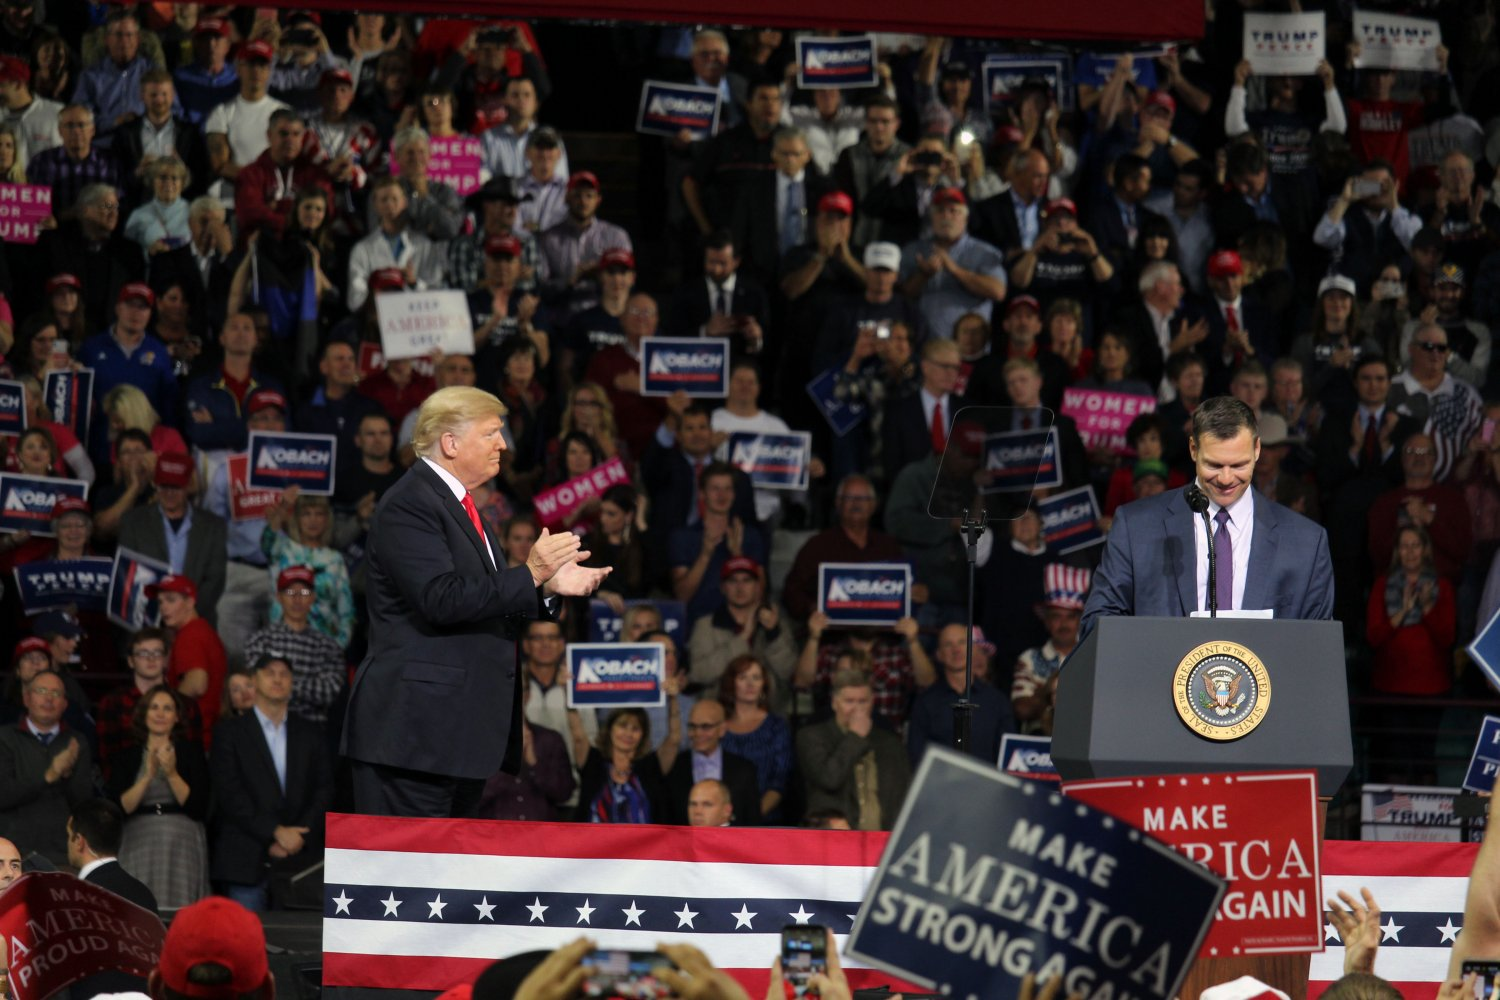 President Donal Trump applauds as he hands off the microphone to Kris Koback. Kobach, who is running for Governor of Kansas, spoke along with Trump at a rally in Topeka, Kansas on Oct. 6 after recieving personal endorsement from him and his campaign.